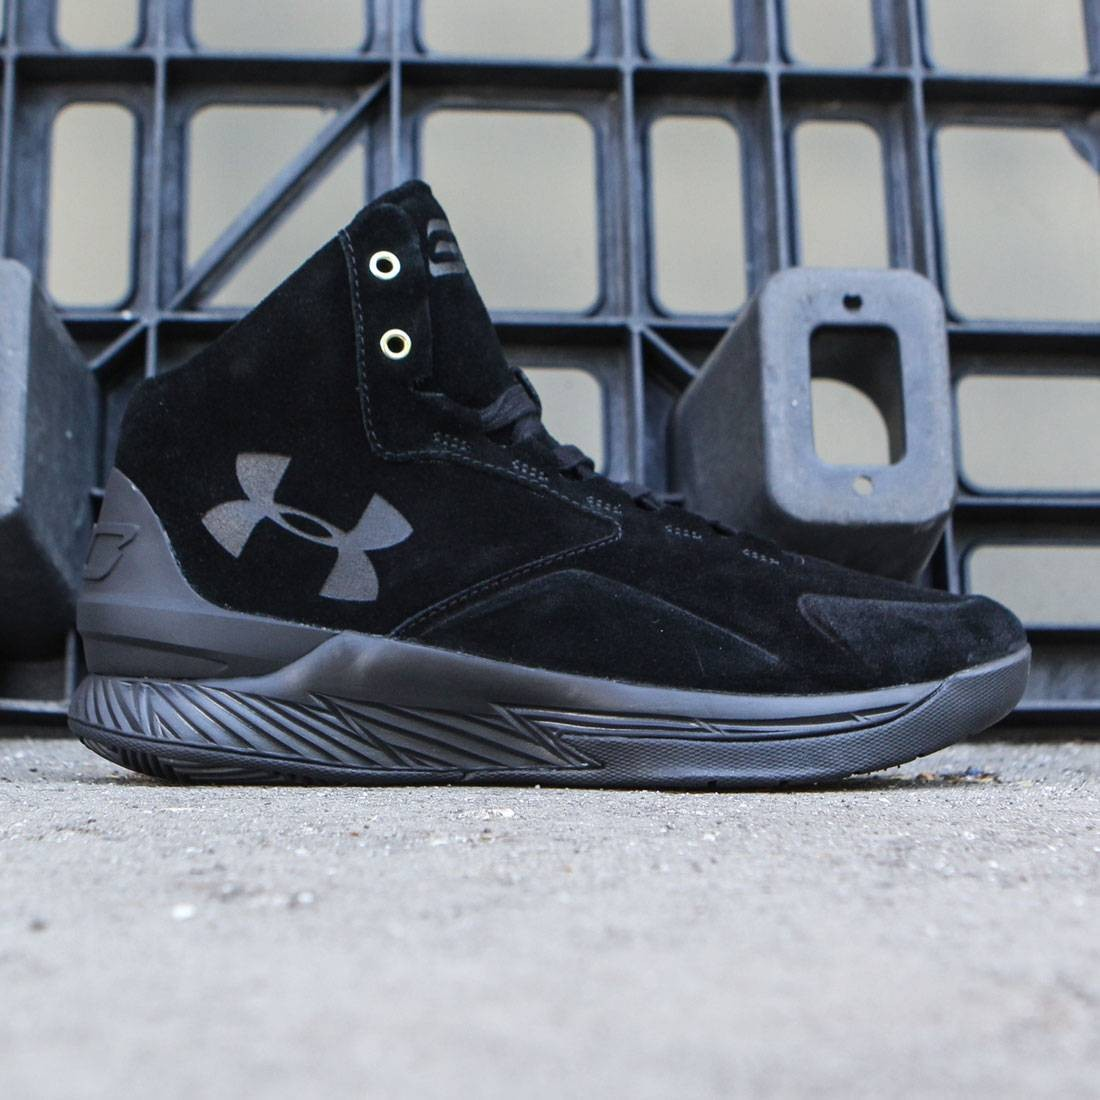 0726dde4 Under Armour x Steph Curry Men Curry 1 Mid Alpha - Curry Lux Pack black  black